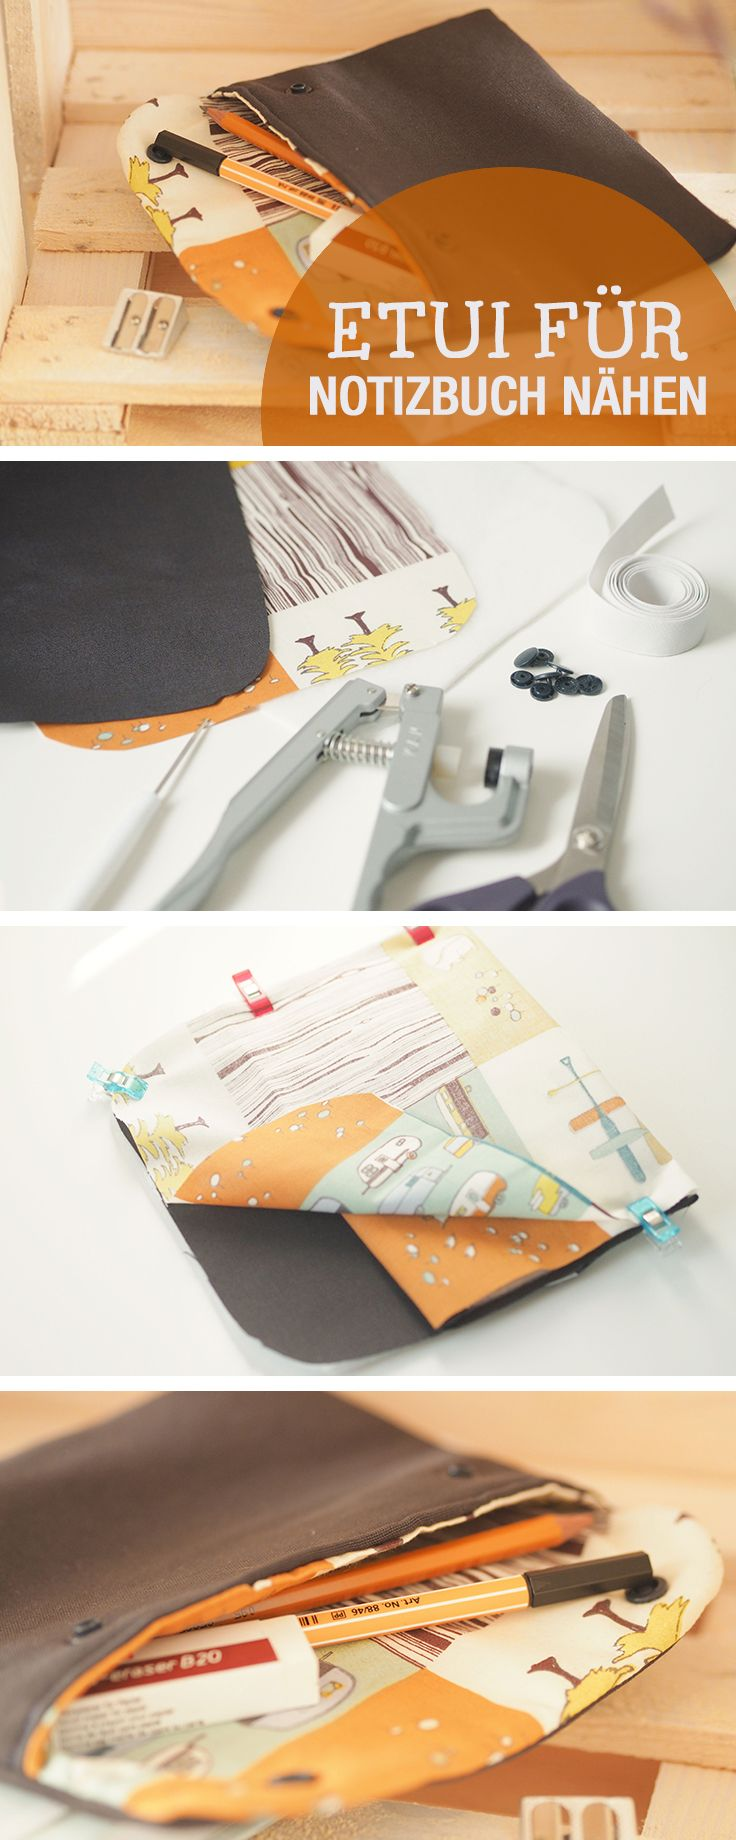 DIY-Nähanleitung: Stiftemäppchen, Federtasche für Notizbuch nähen, DIY Ideen Schule / diy sewing tutorial: sew a pencil case to strap on your notebook, school diy via DaWanda.com